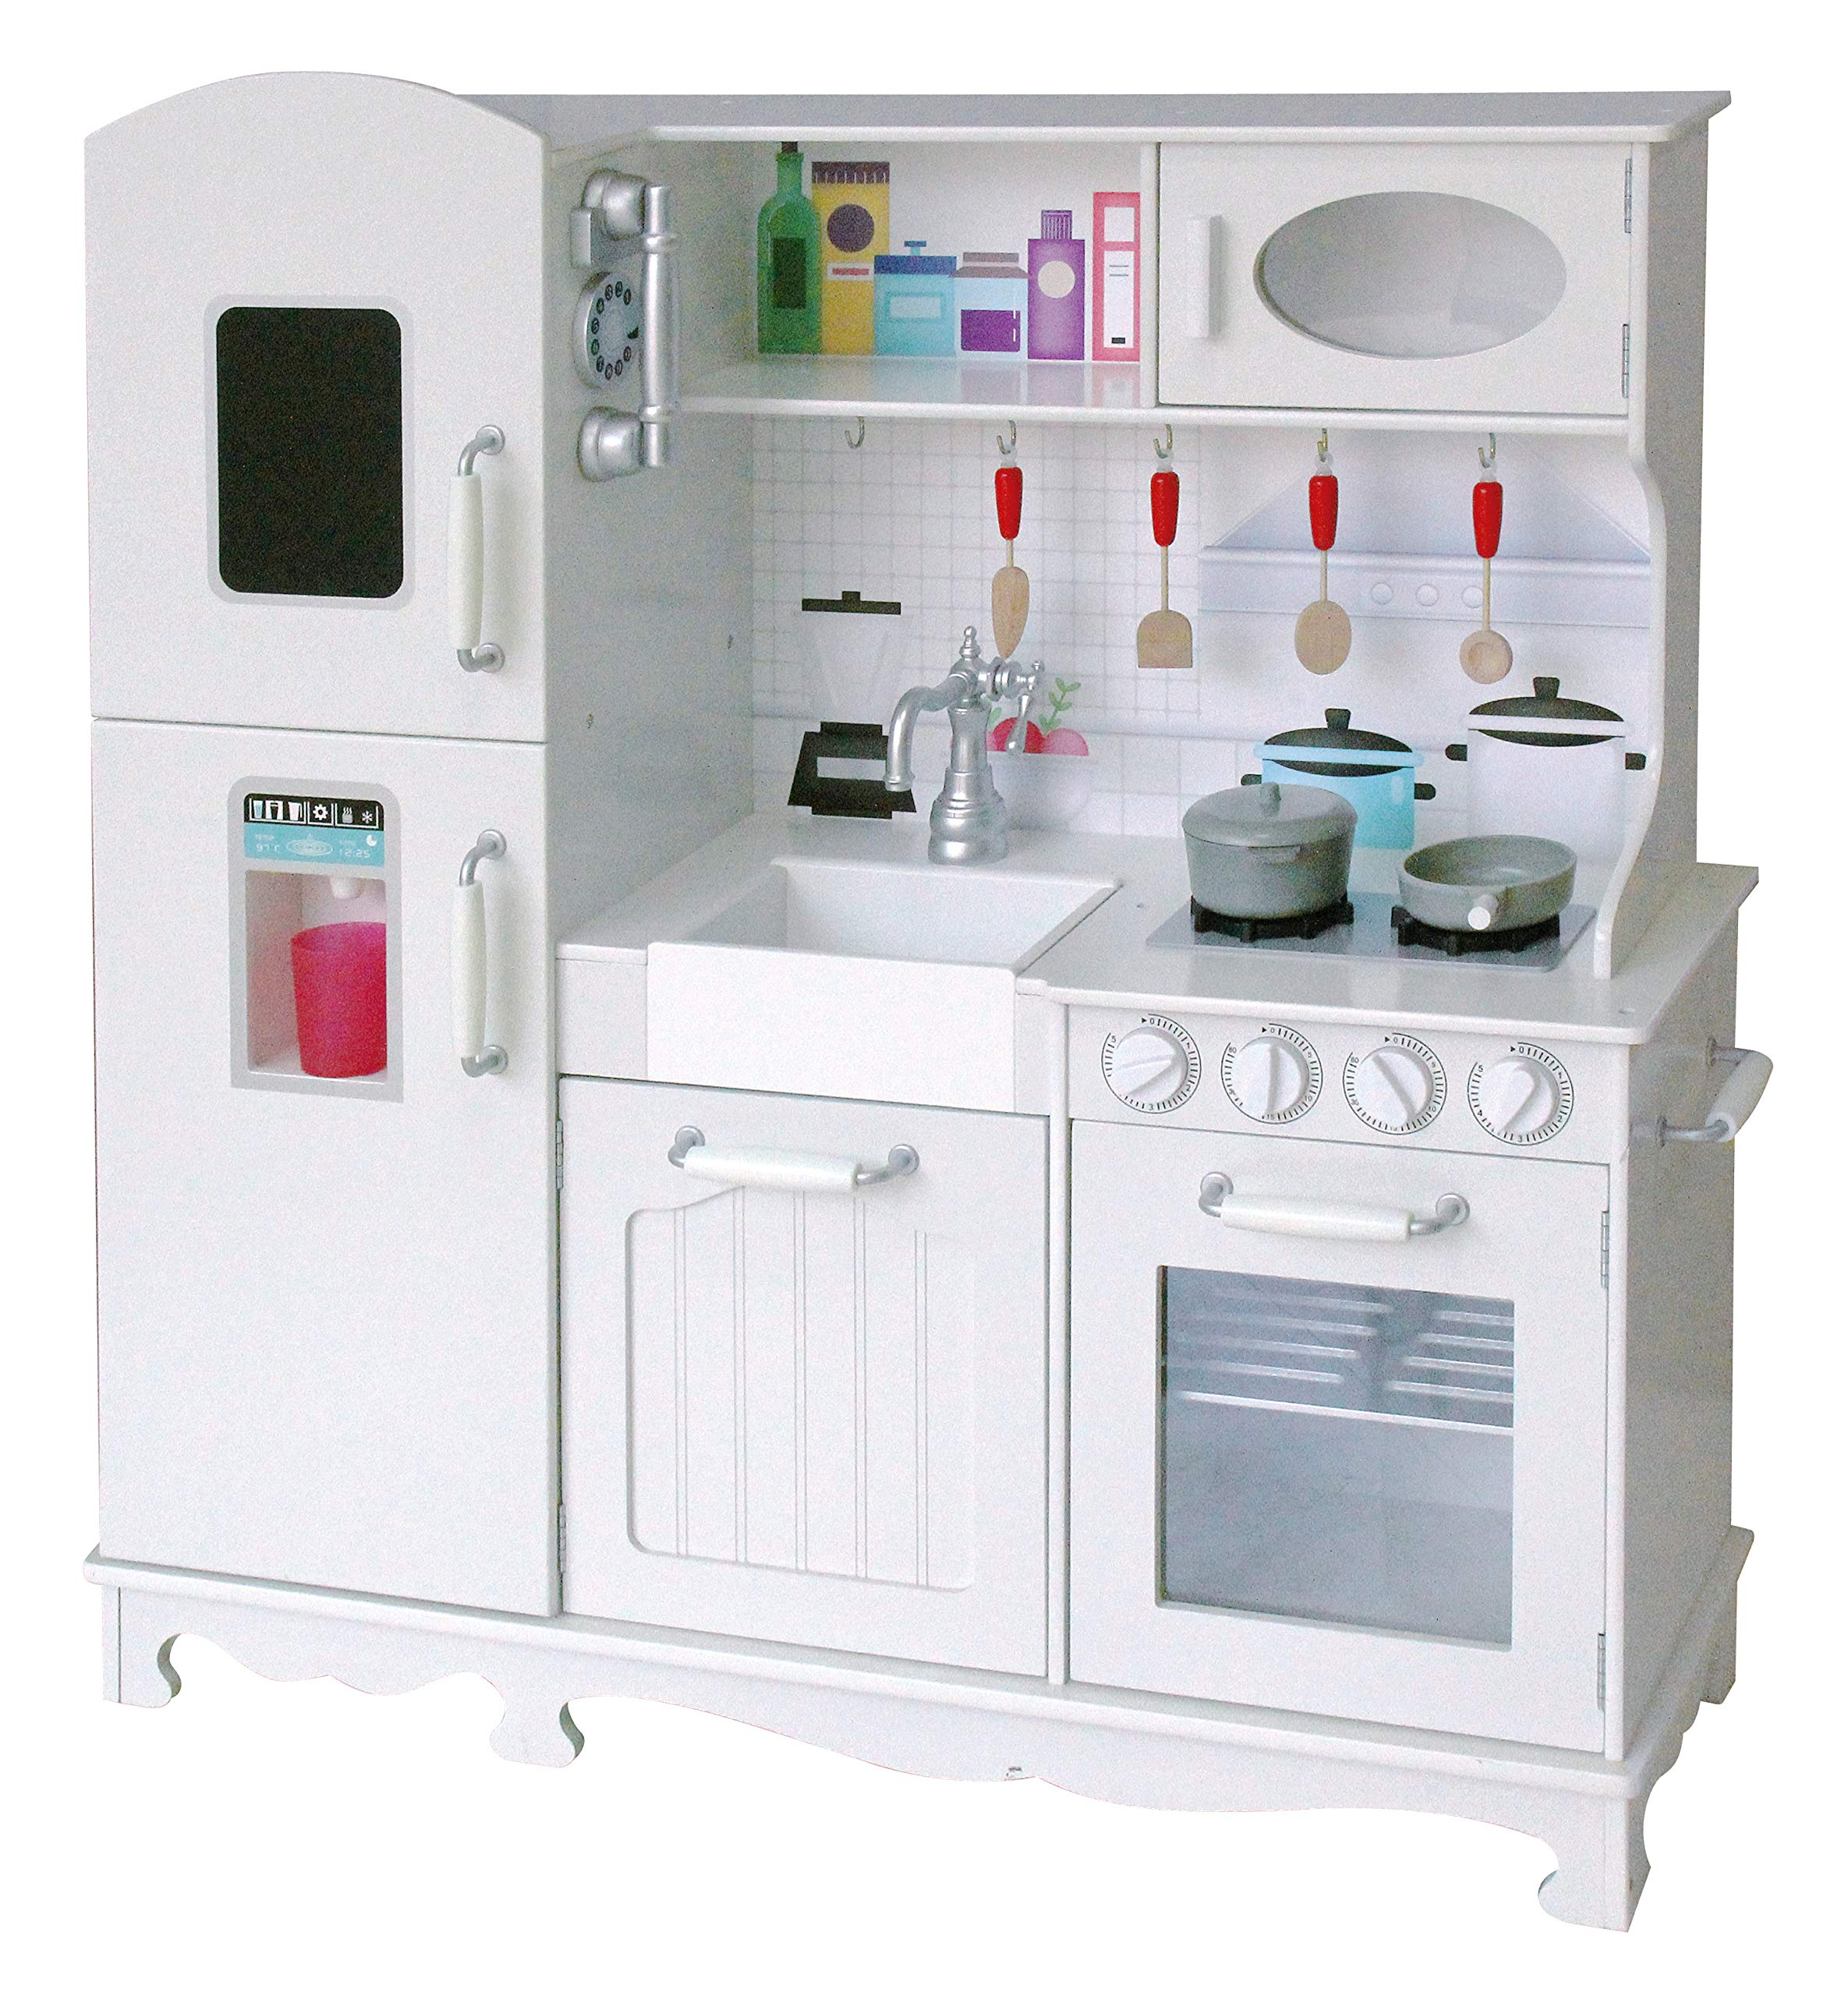 Rainbow Sophia Timeless Wood Kids Play Kitchen, Toddler Pretend Play Set with Ice Maker, Stove, Oven and Sounded Knobs by Rainbow Sophia